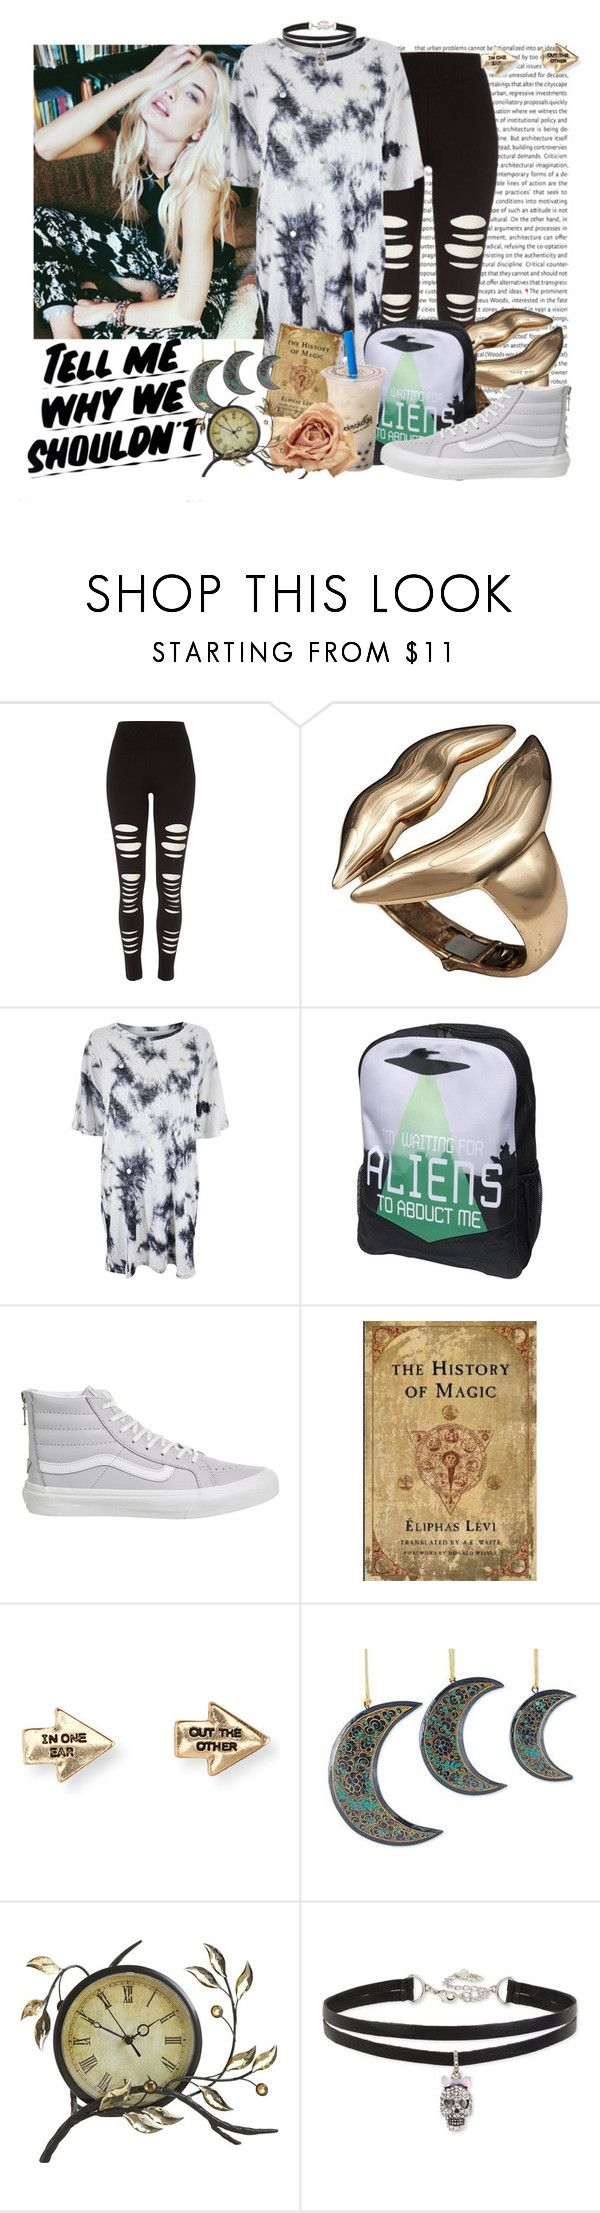 """Living is A Hurtful Memory"" by grimalkim ❤ liked on Polyvore featuring River Island, Bernard Delettrez, Native Rose, Vans, Levi's, Baron Von Fancy, Aéropostale, NOVICA, Pier 1 Imports and Betsey Johnson"